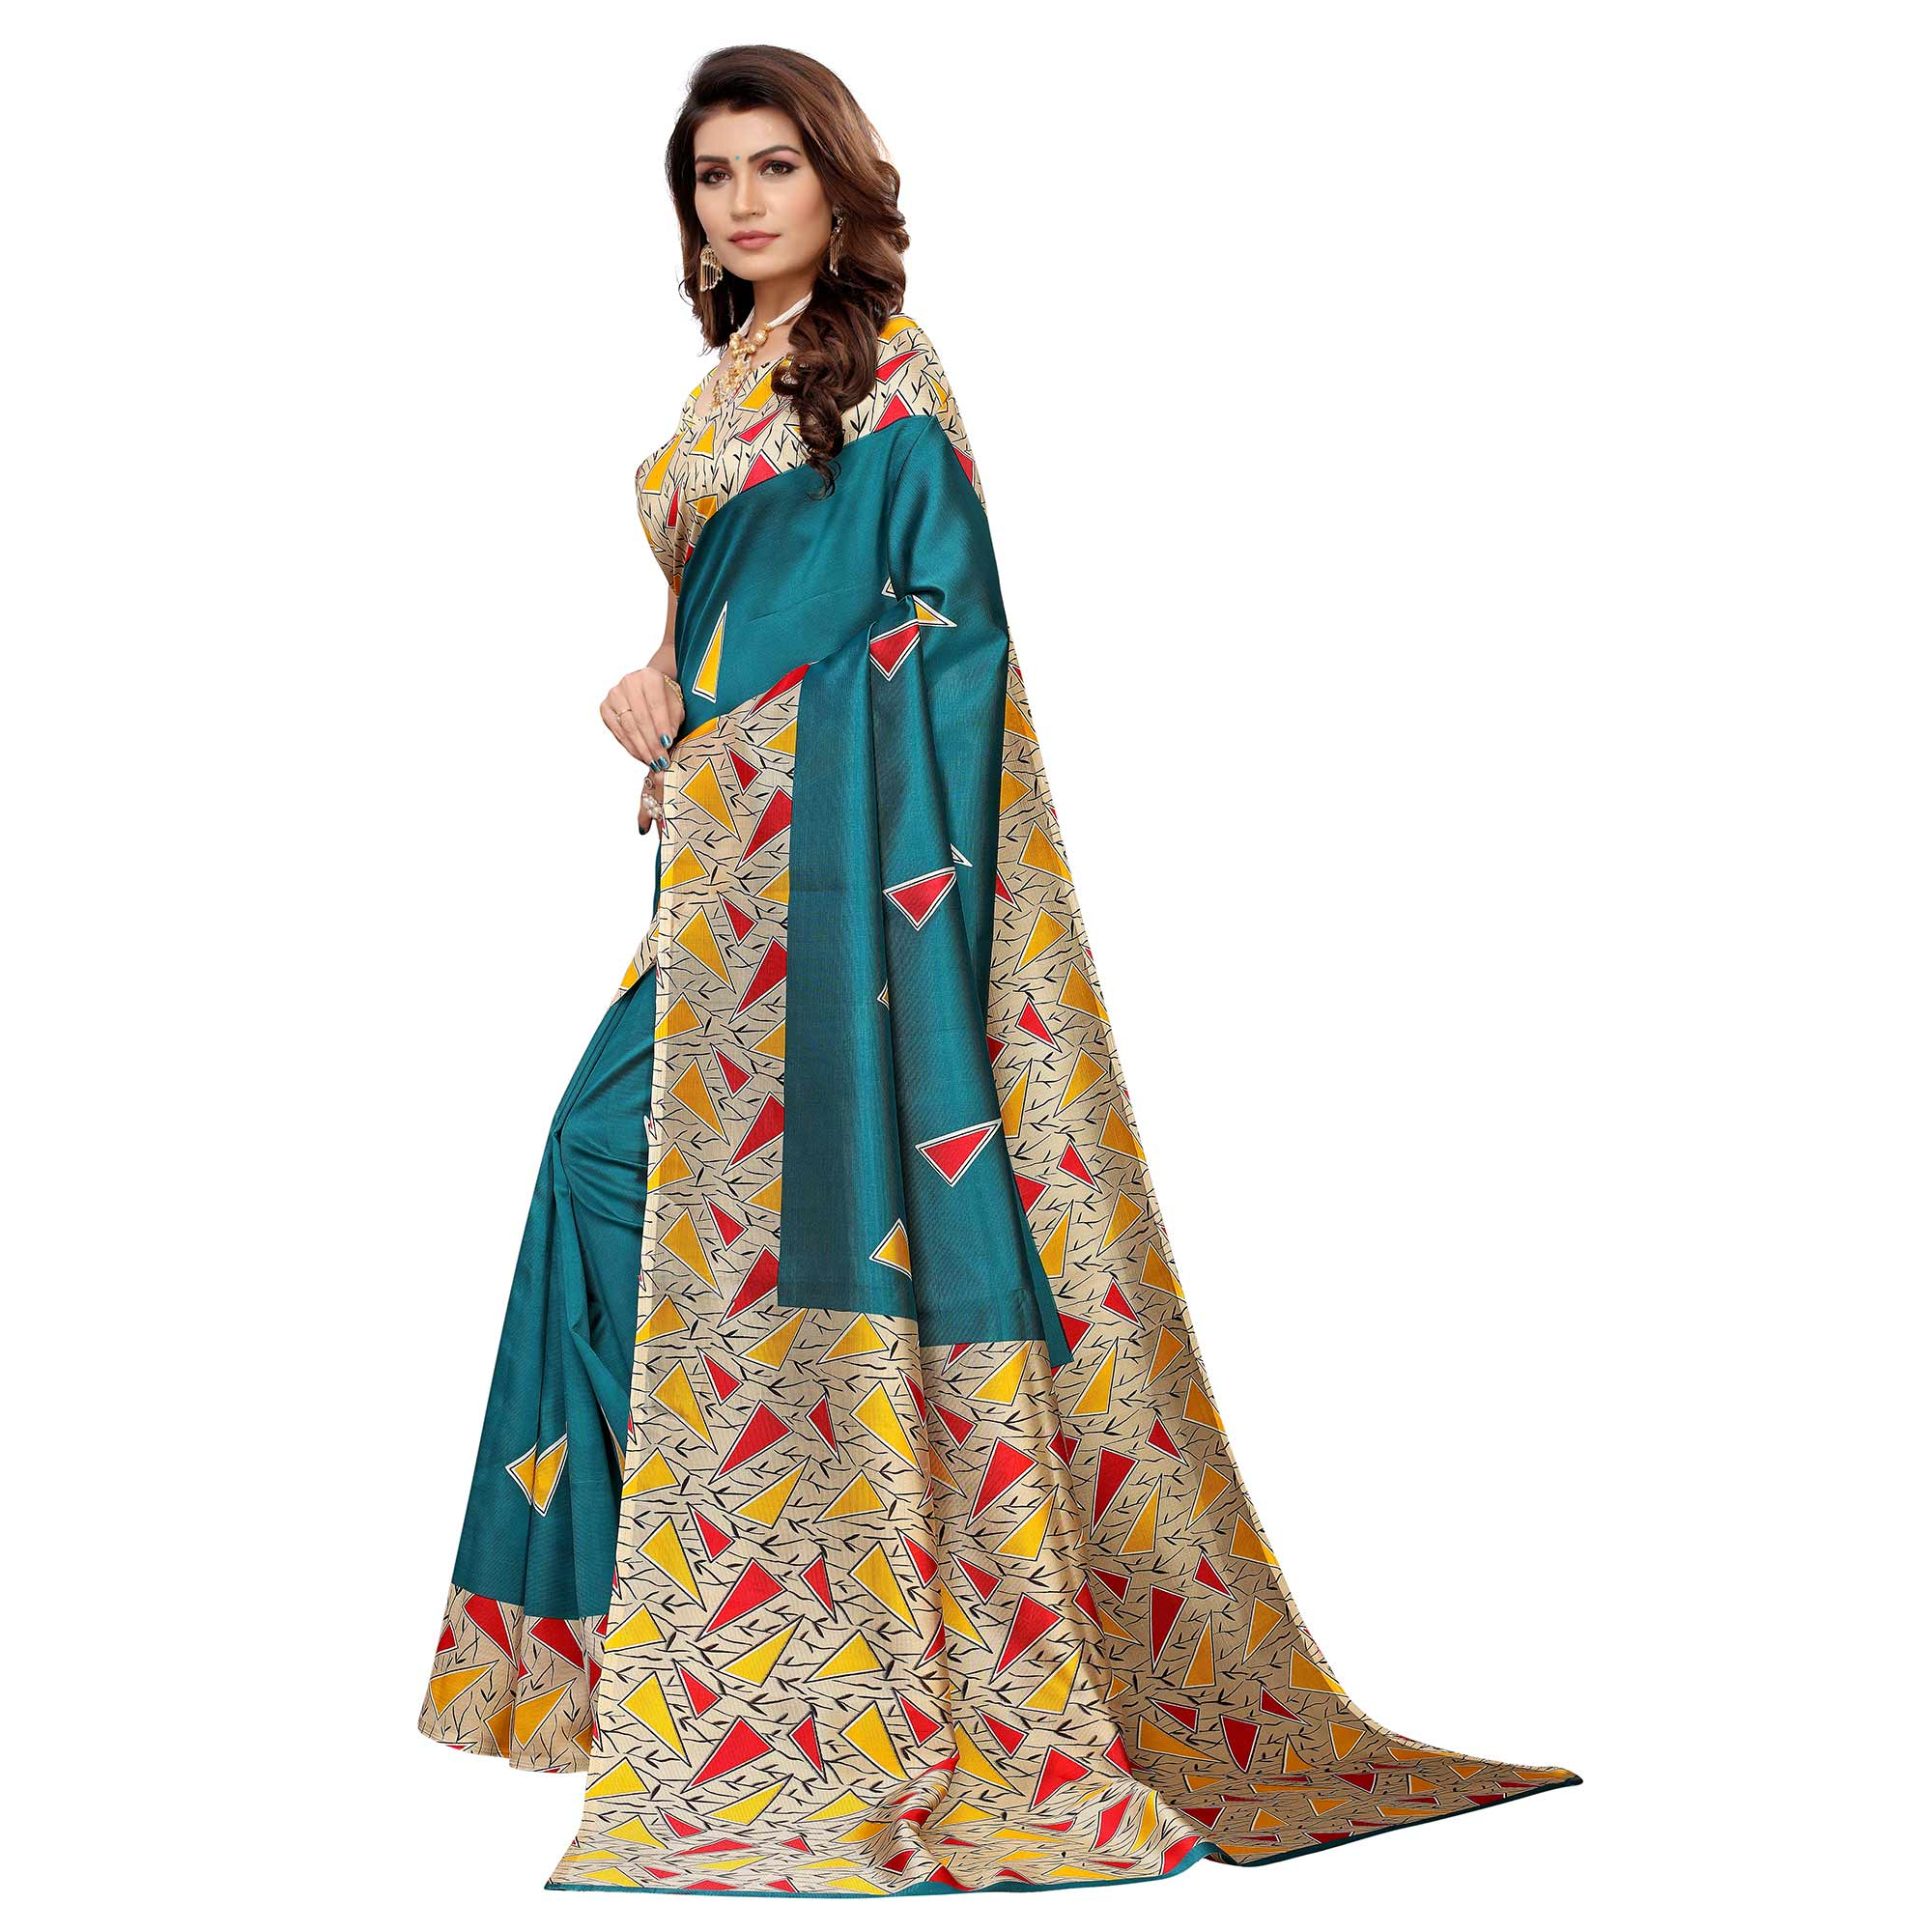 Captivating Teal Green Colored Casual Wear Printed Art Silk Saree